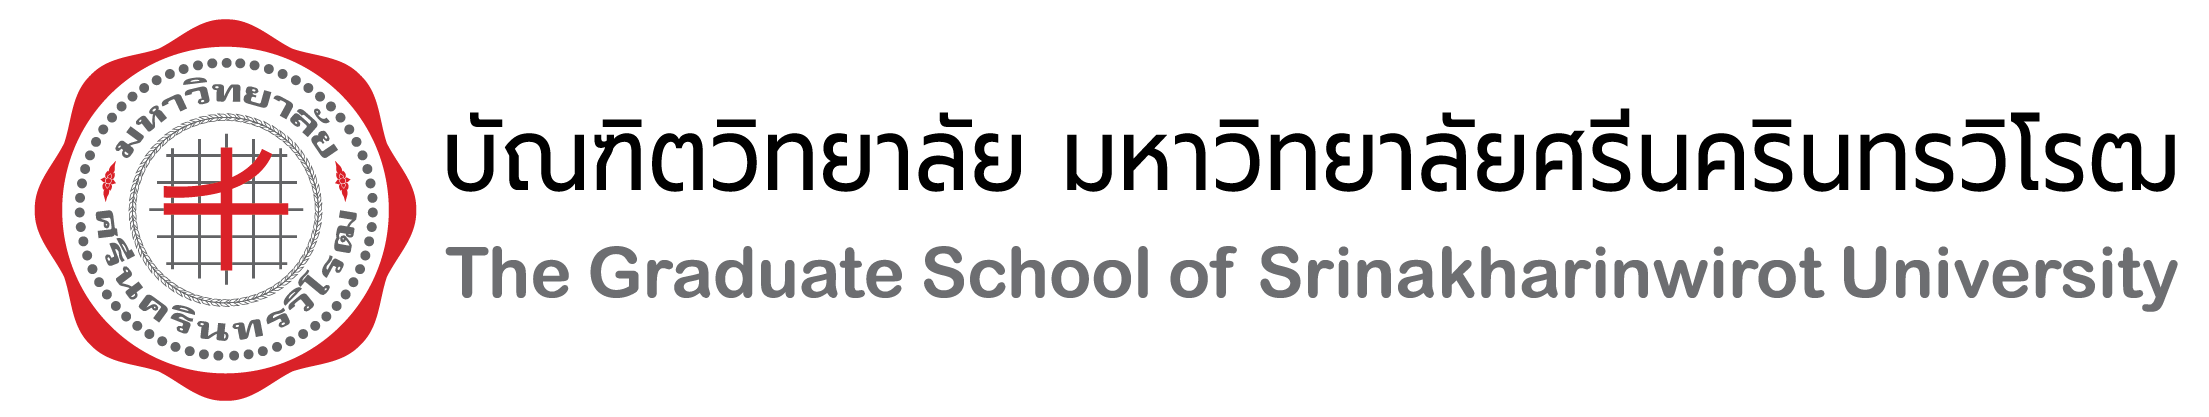 Graduate School of Srinakharinwirot University. Logo